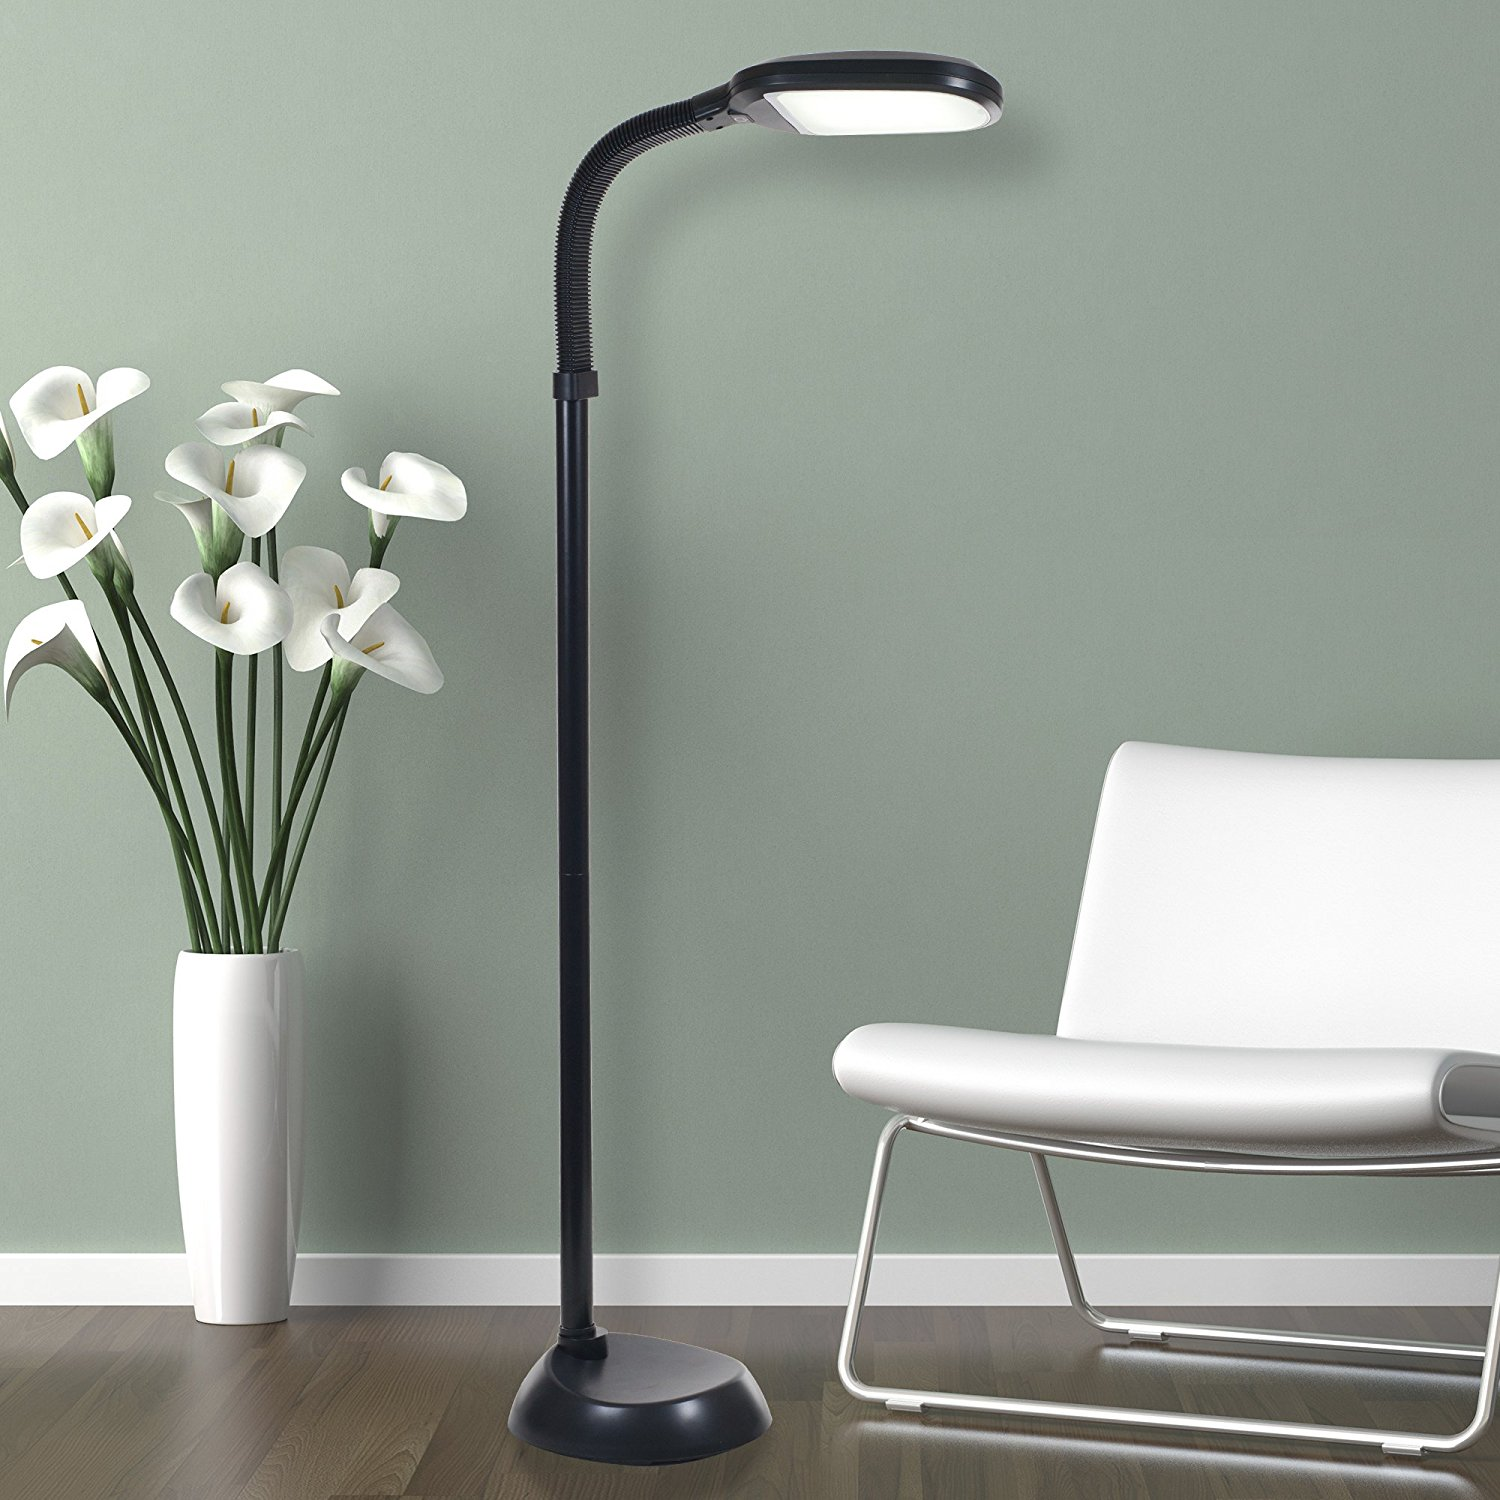 LED Natural Full Spectrum Sunlight Therapy Reading Floor Lamp with Dimmer  Switch by Lavish Home (Black)